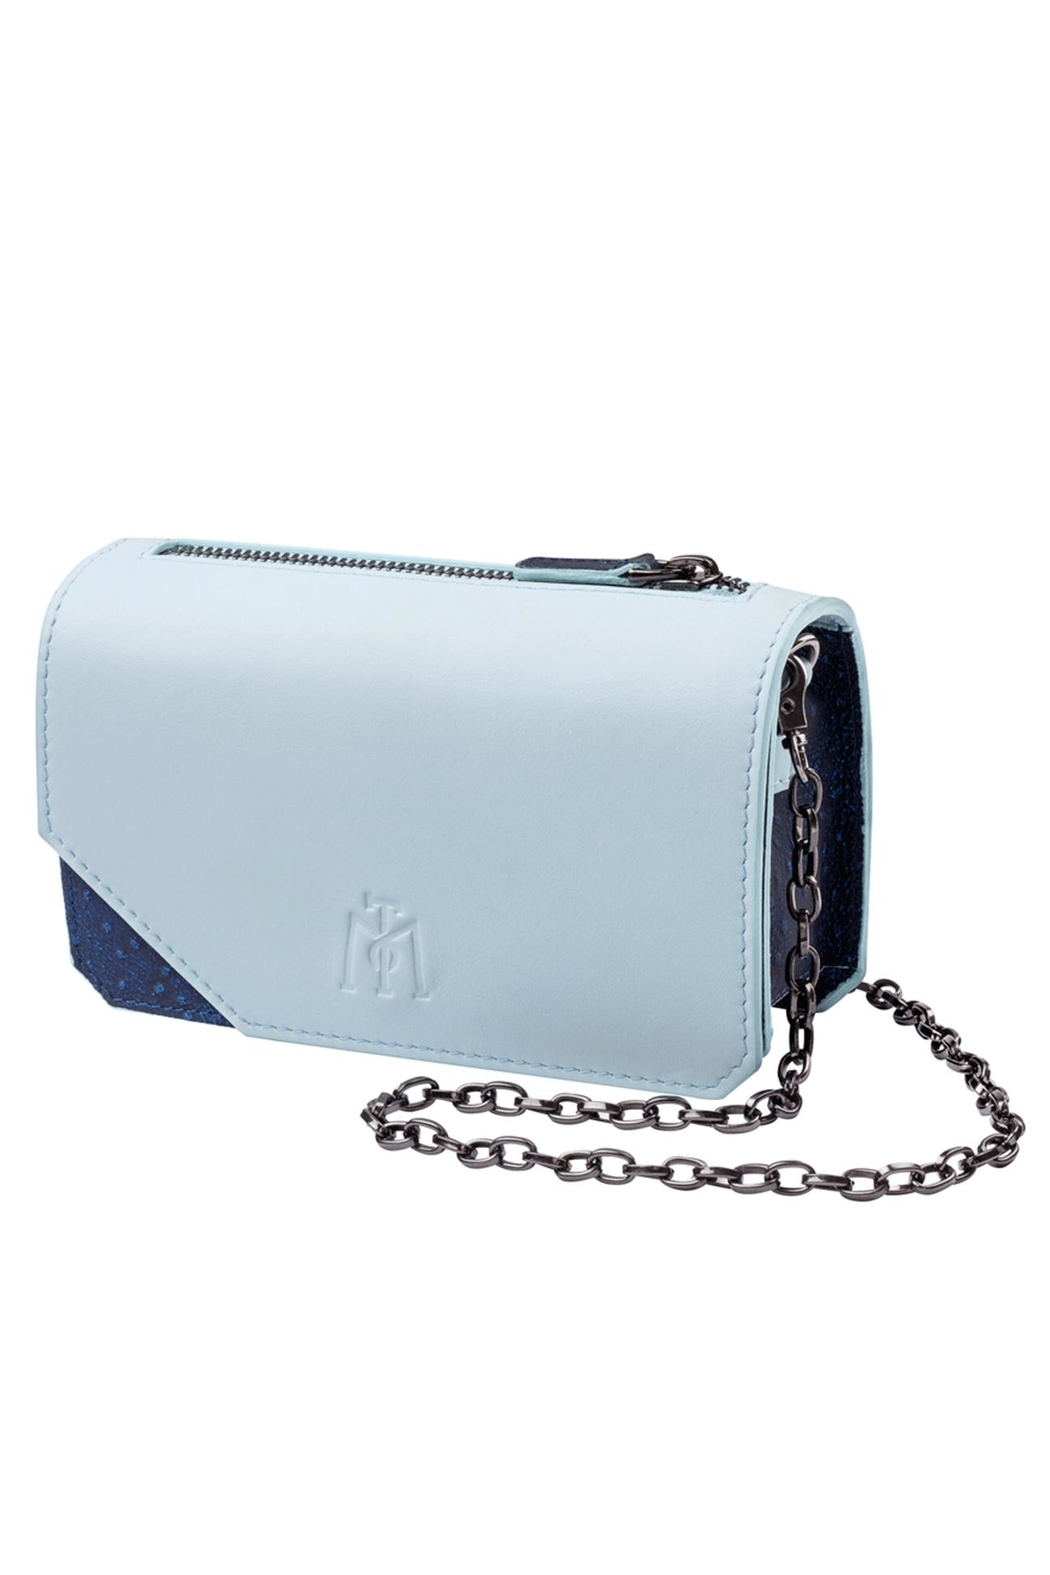 Martella Bags Baby Blue Leather Clutch - Main Image